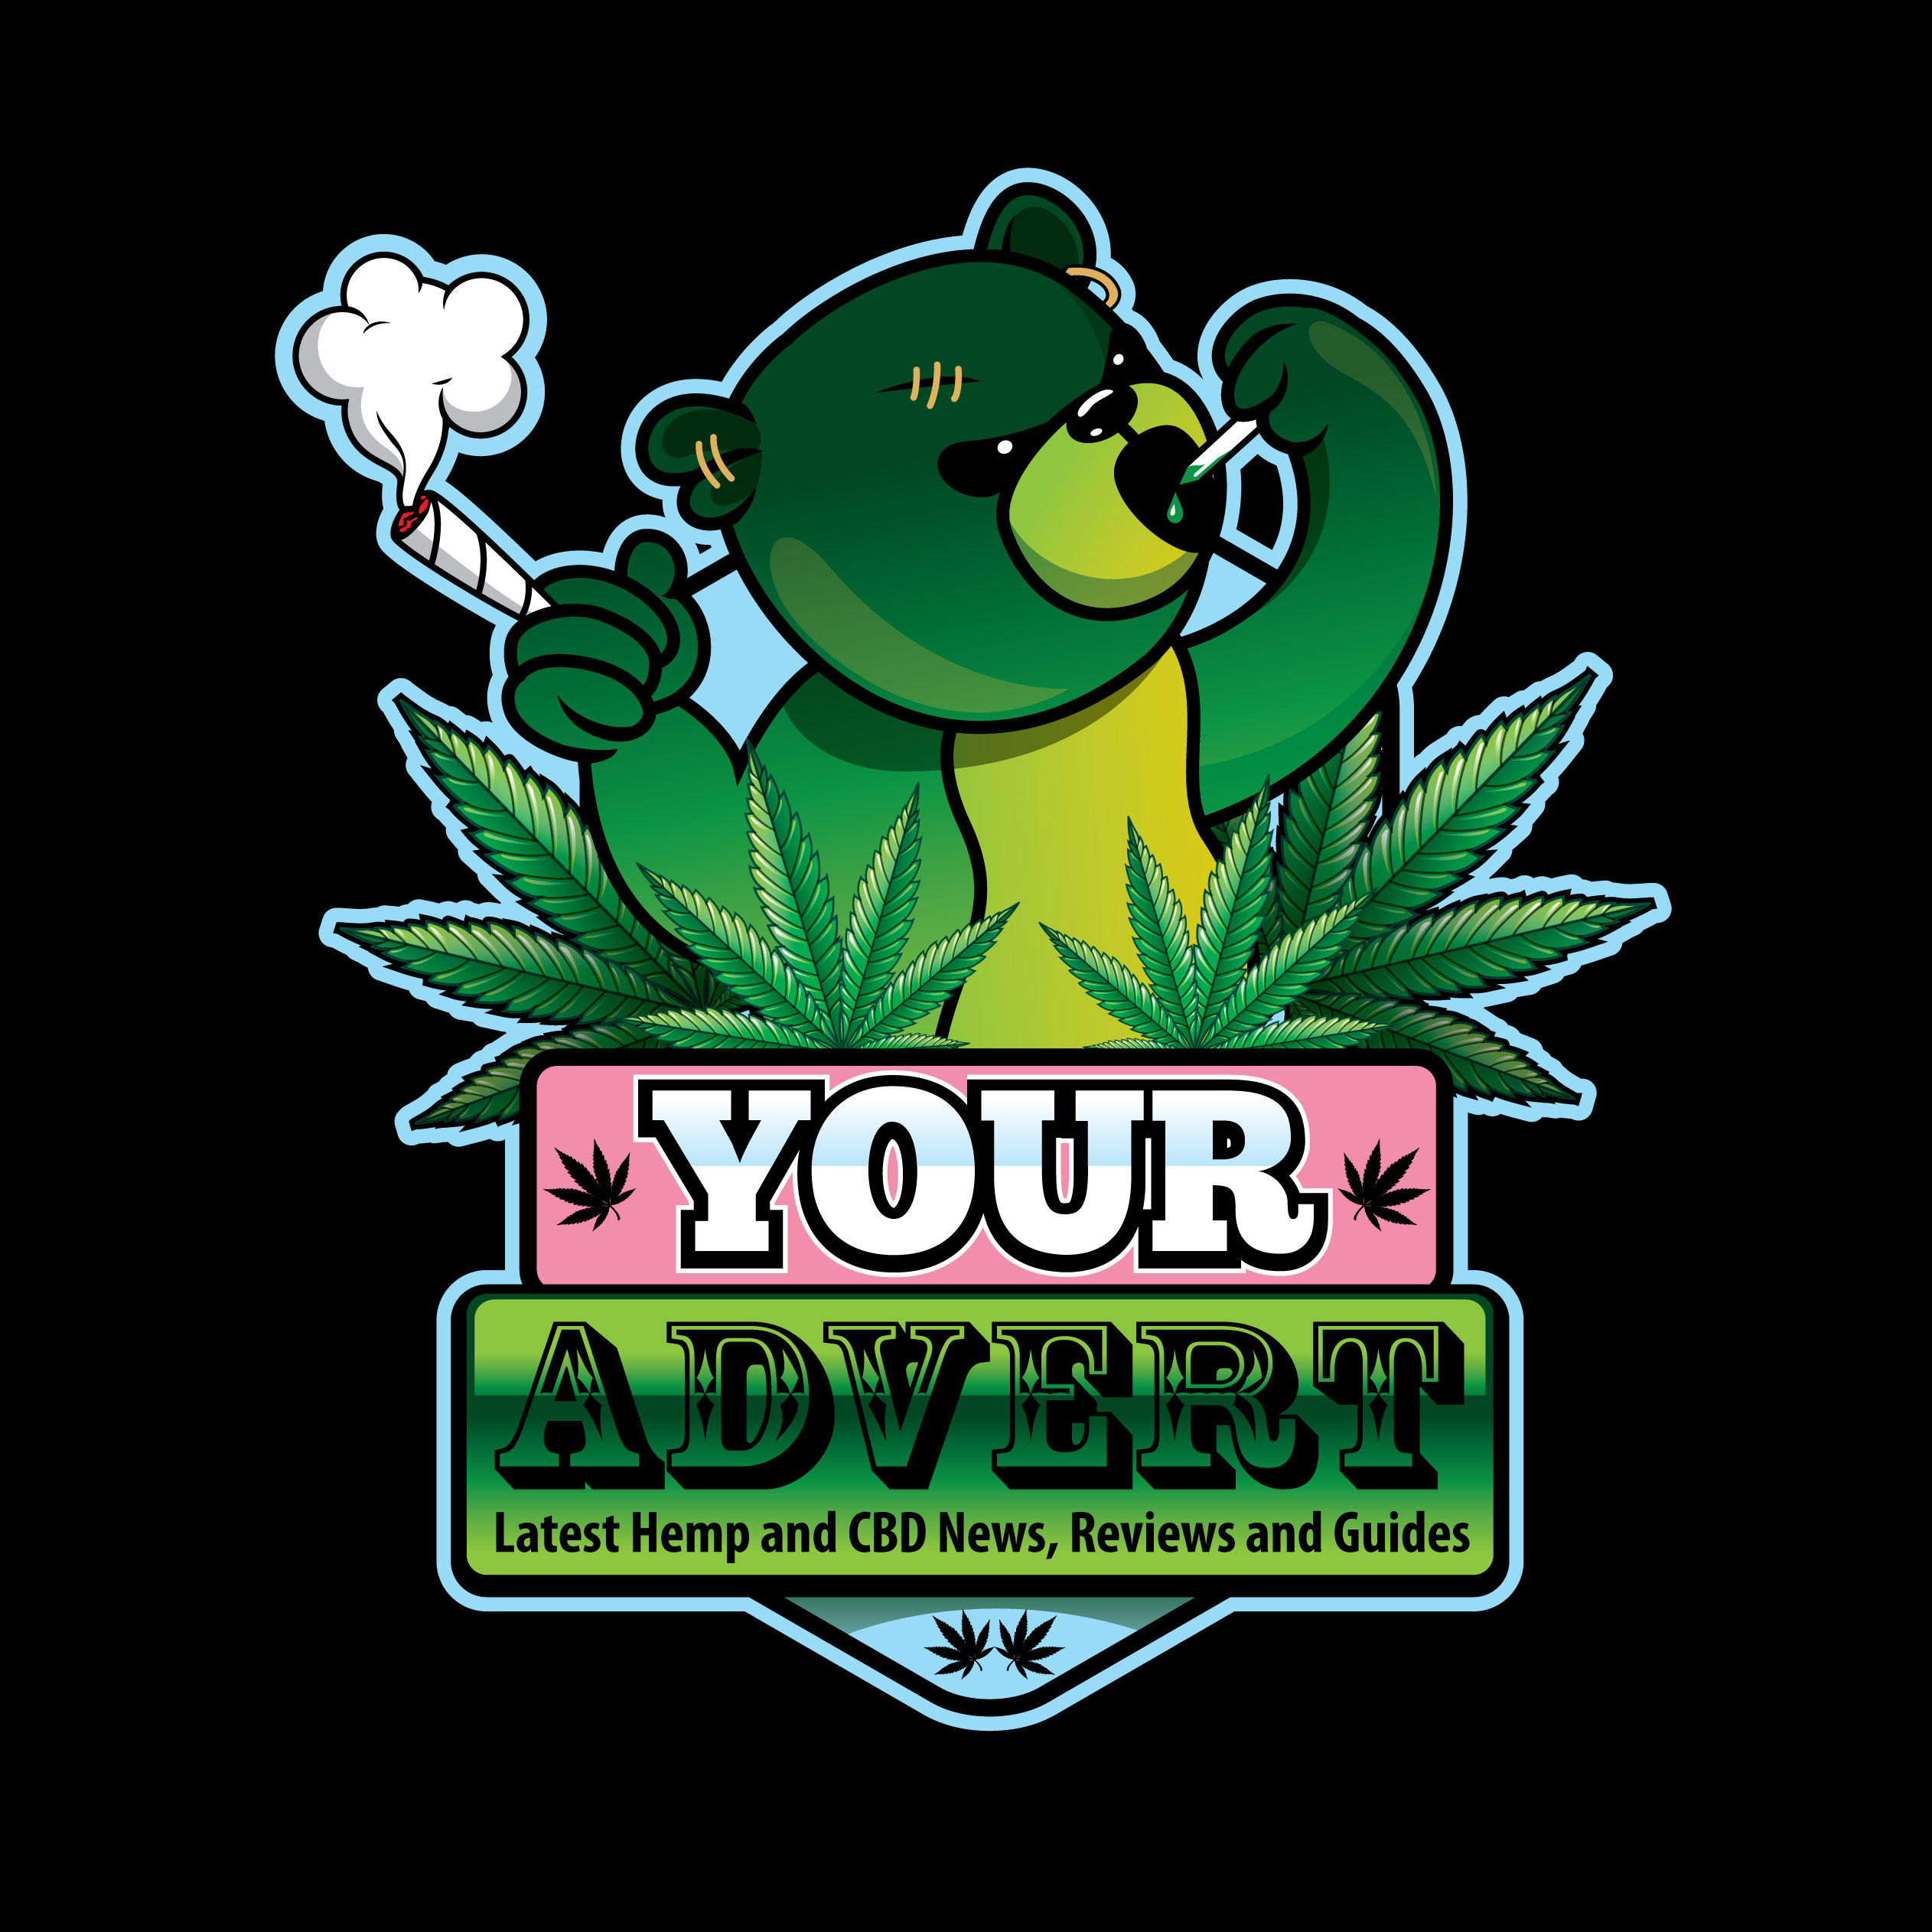 CBD Banner Advertising - CBD and Hemp Banner Ads